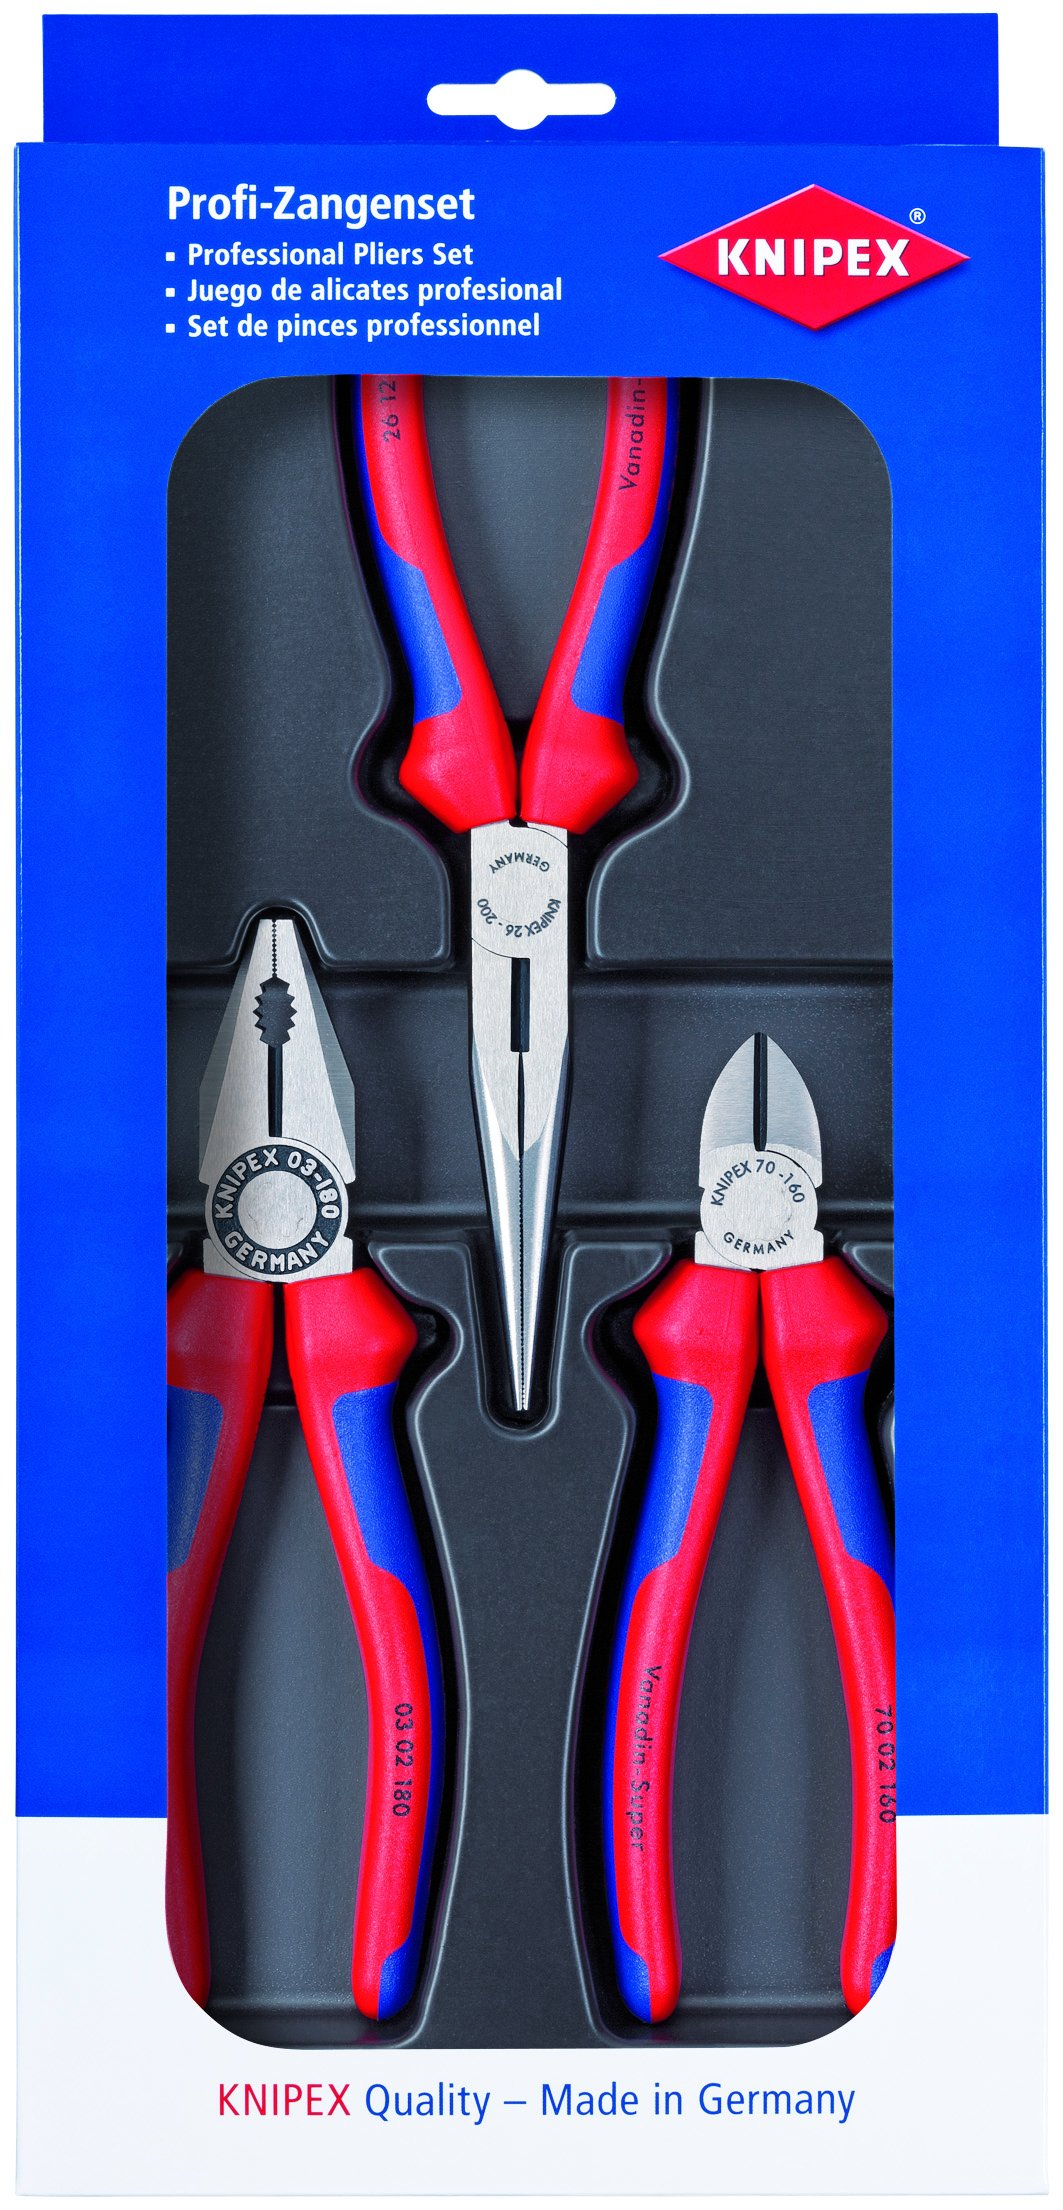 Knipex Tools 00 20 11 Combination Long Needle Nose Pliers and Diagonal Cutters Assembly Tool Set (3 Piece)